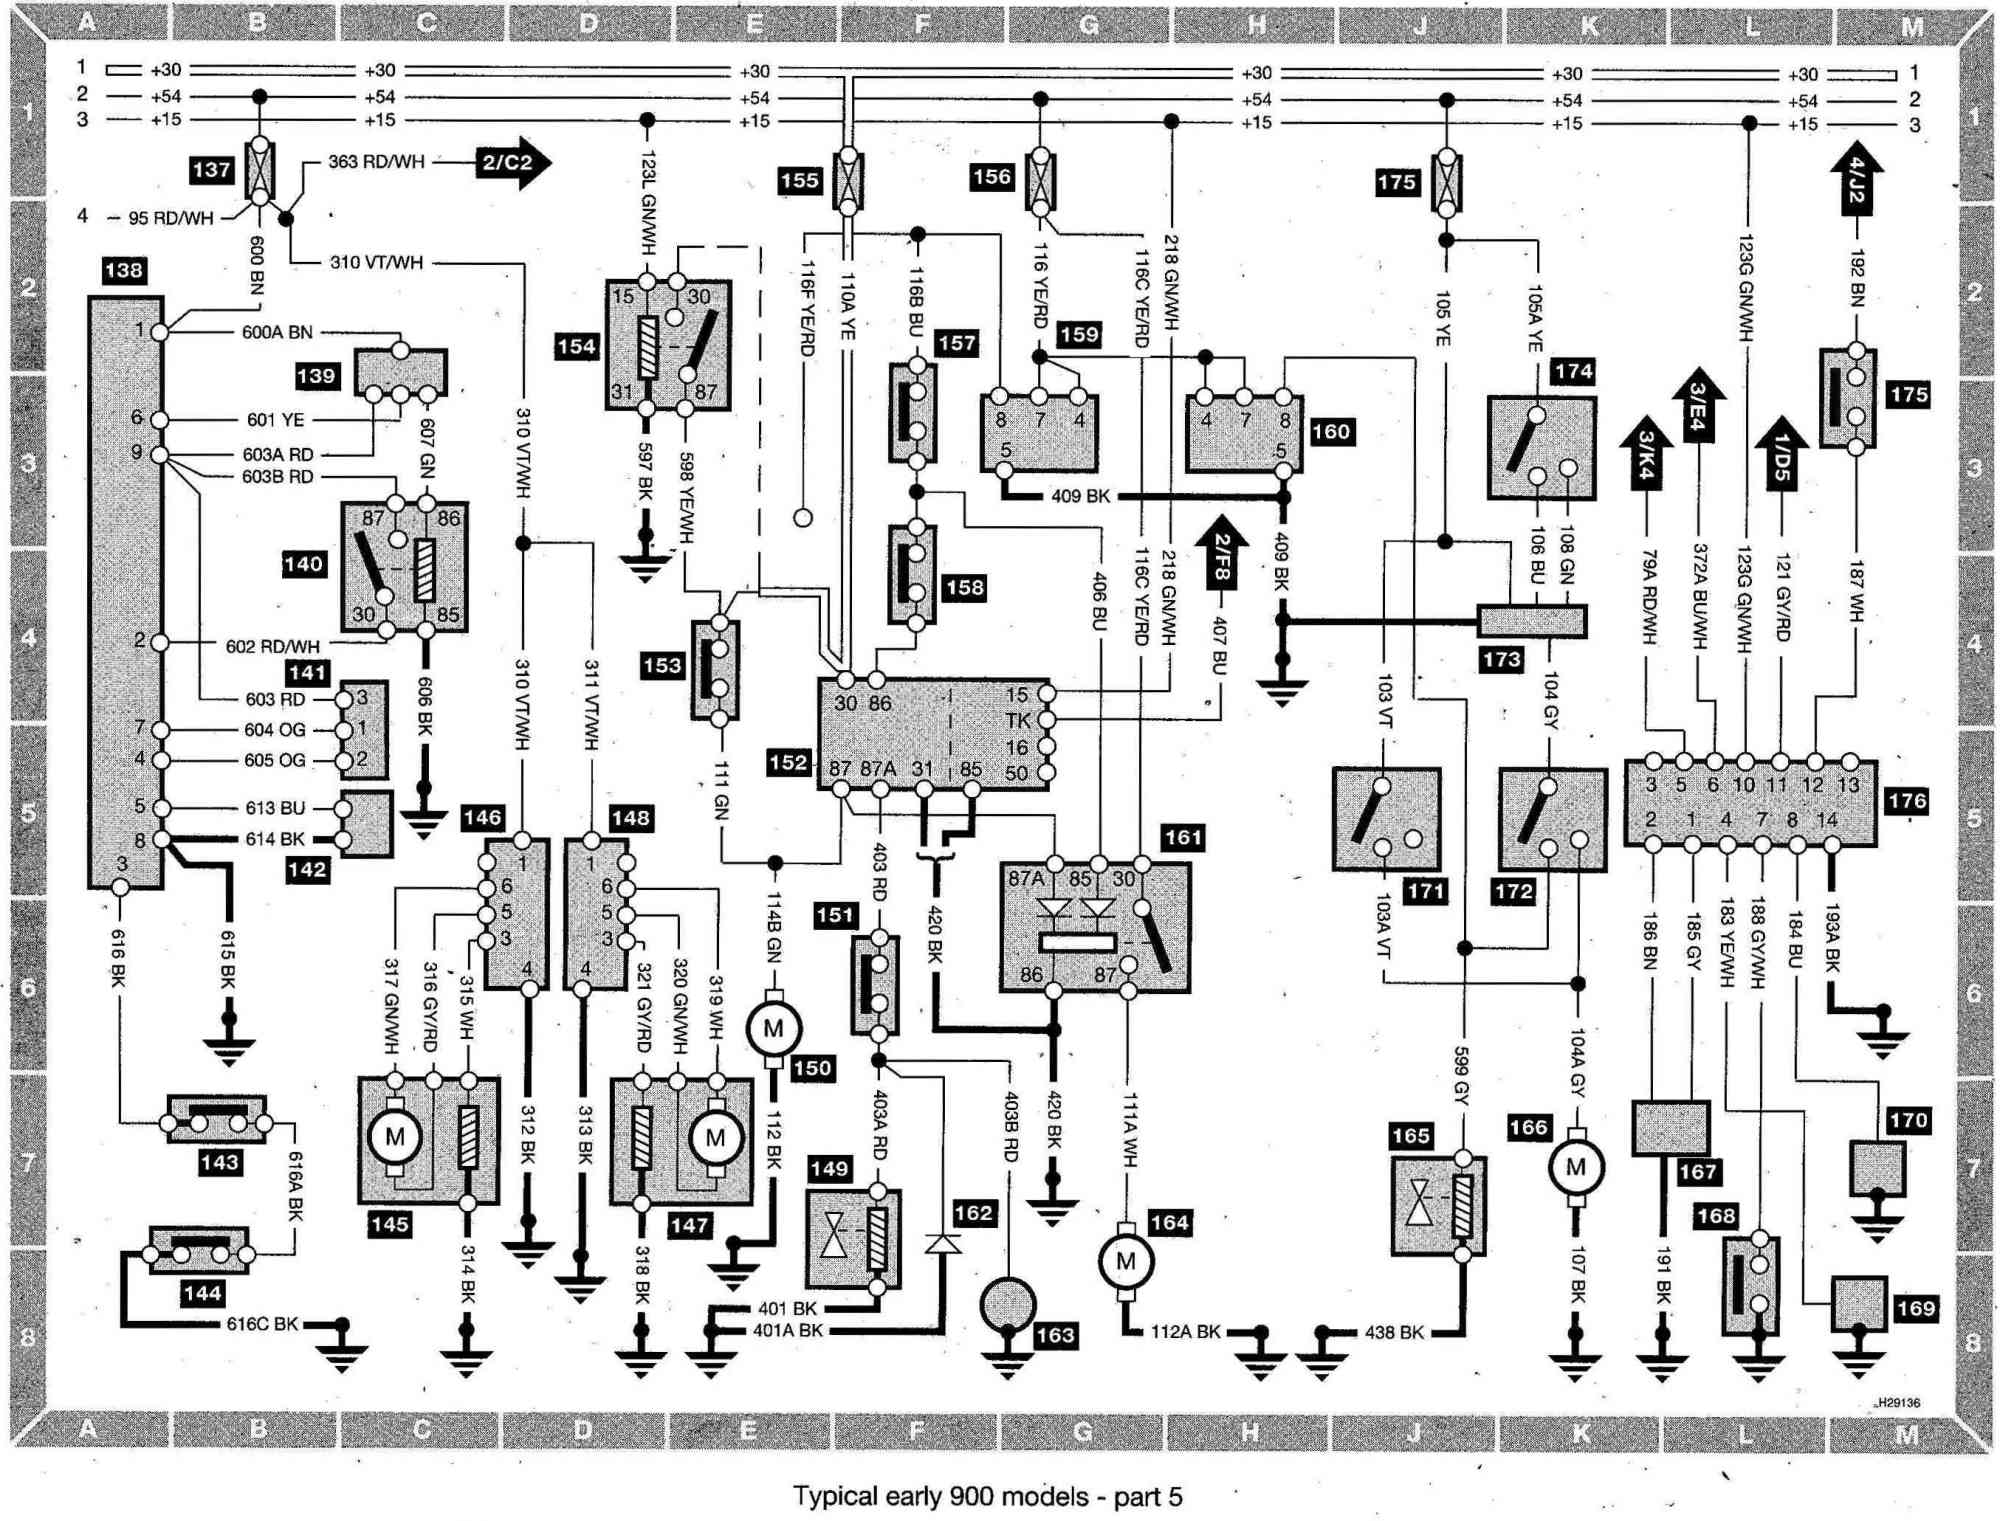 hight resolution of 2001 saab 9 3 thermostat location free image about wiring diagram saab 9 3 wiring diagram saab 93 wiring diagram download